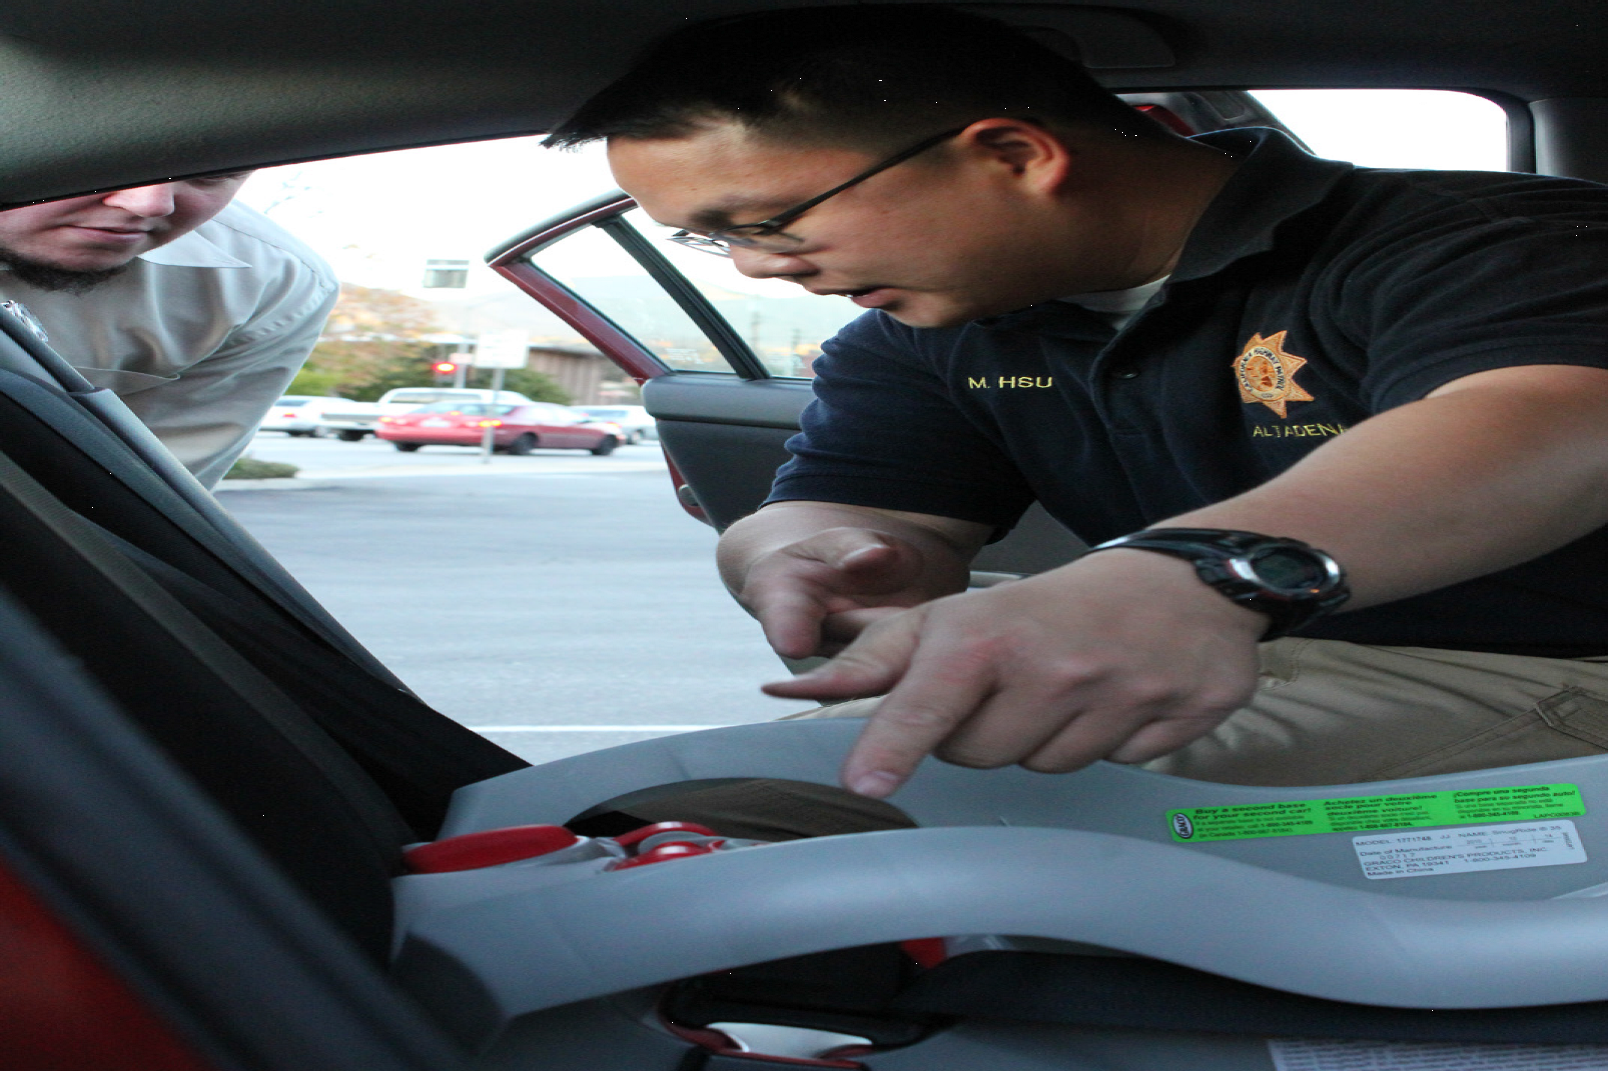 CHP Officer inspecting car seat